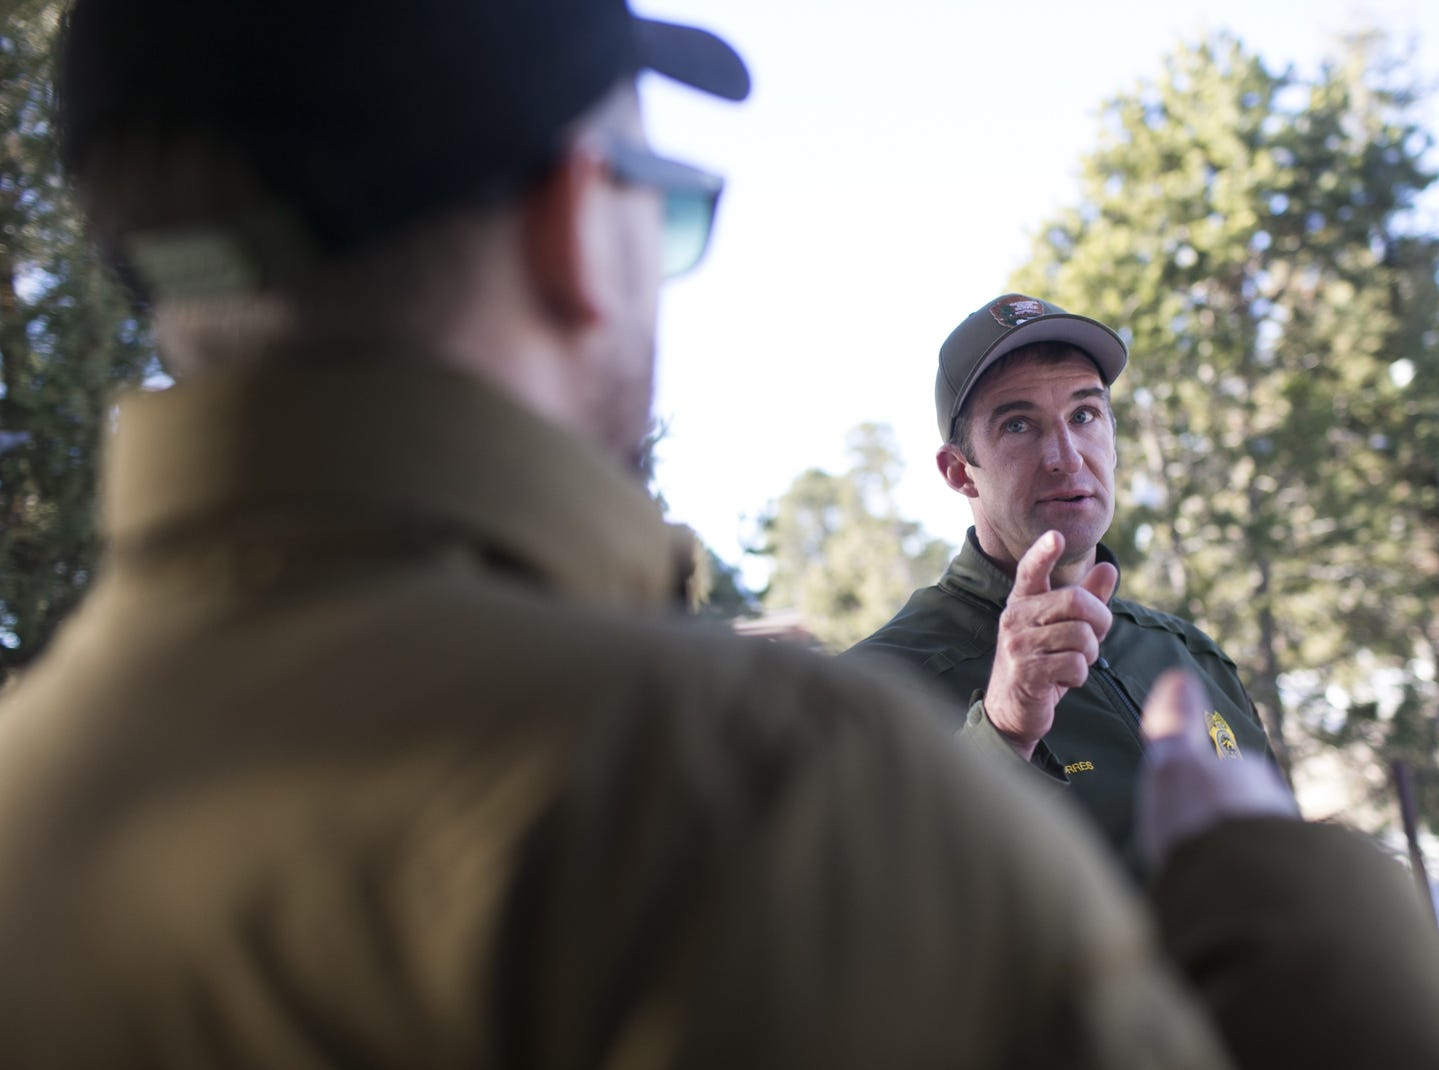 Brandon Torres (right), the Branch Chief of Emergency Services at Grand Canyon National Park, directs guests in the park on Jan. 4, 2019. The park was staffed at minimum capacity due to the government shutdown but retained much of its services due to an executive order issued by Arizona Gov. Doug Ducey to run the park with state funds in the event of a shutdown.